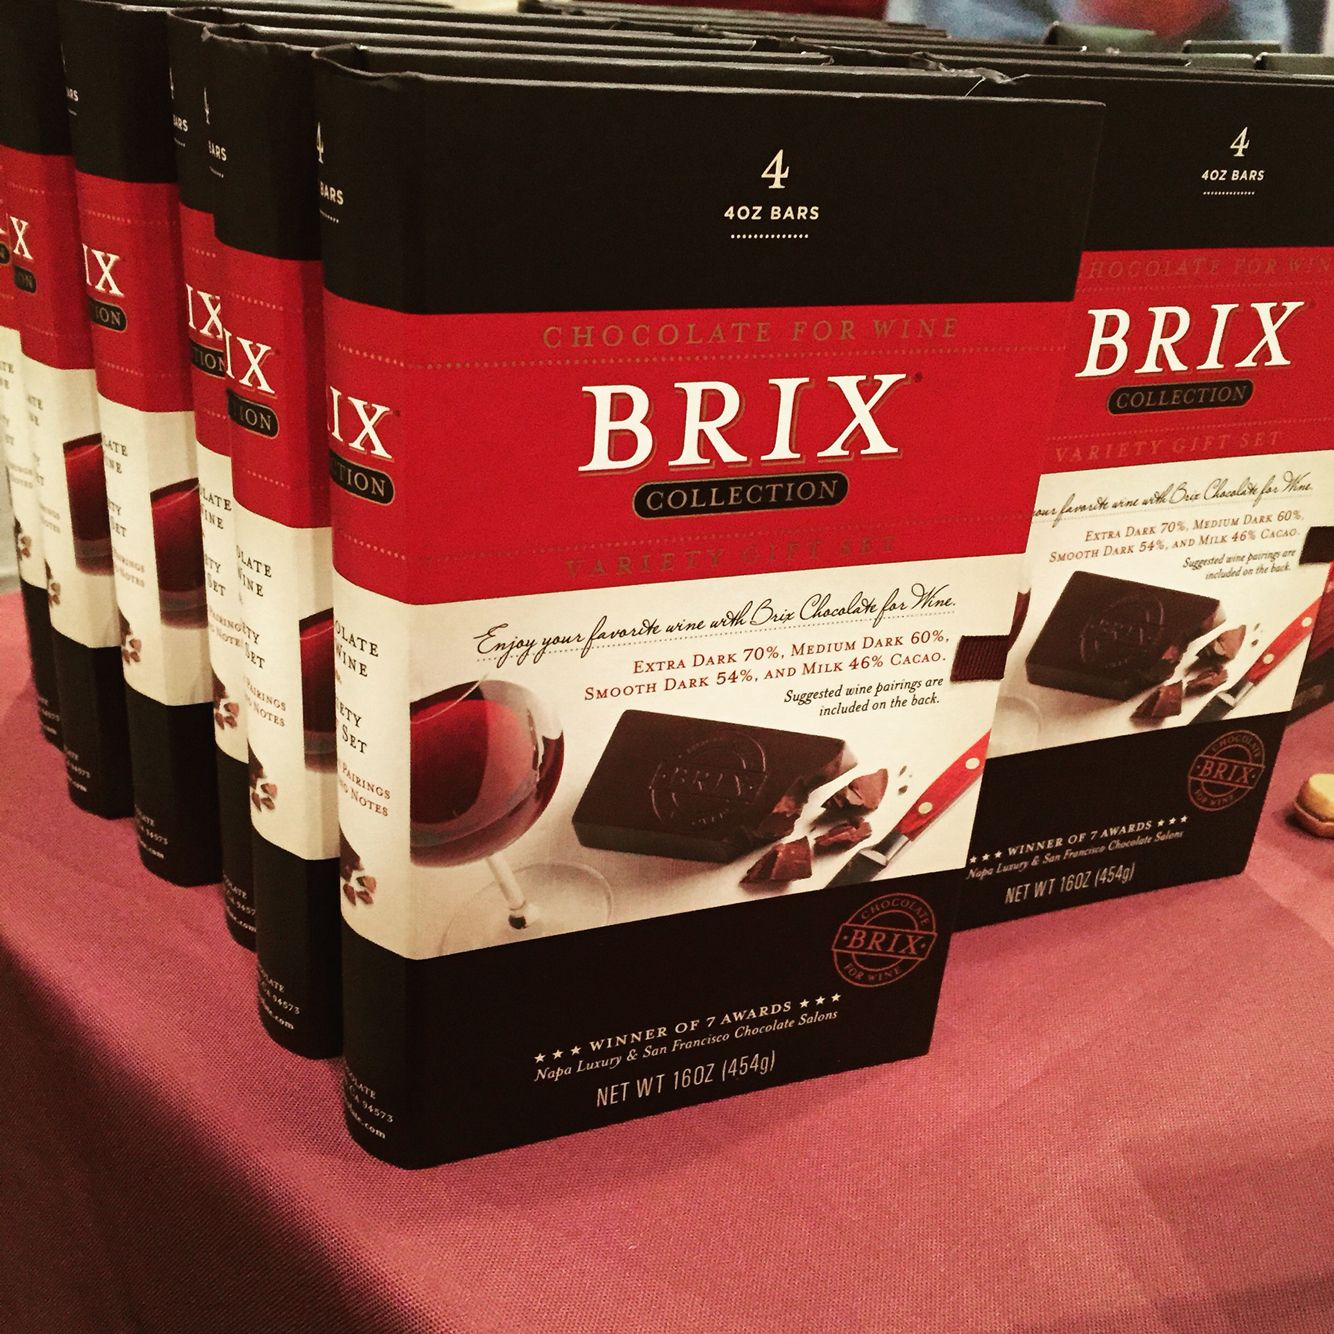 Brix Chocolate Brix Collection Gift Set Chocolate For Wine Entertaining Chocolate Gift Set Gifts